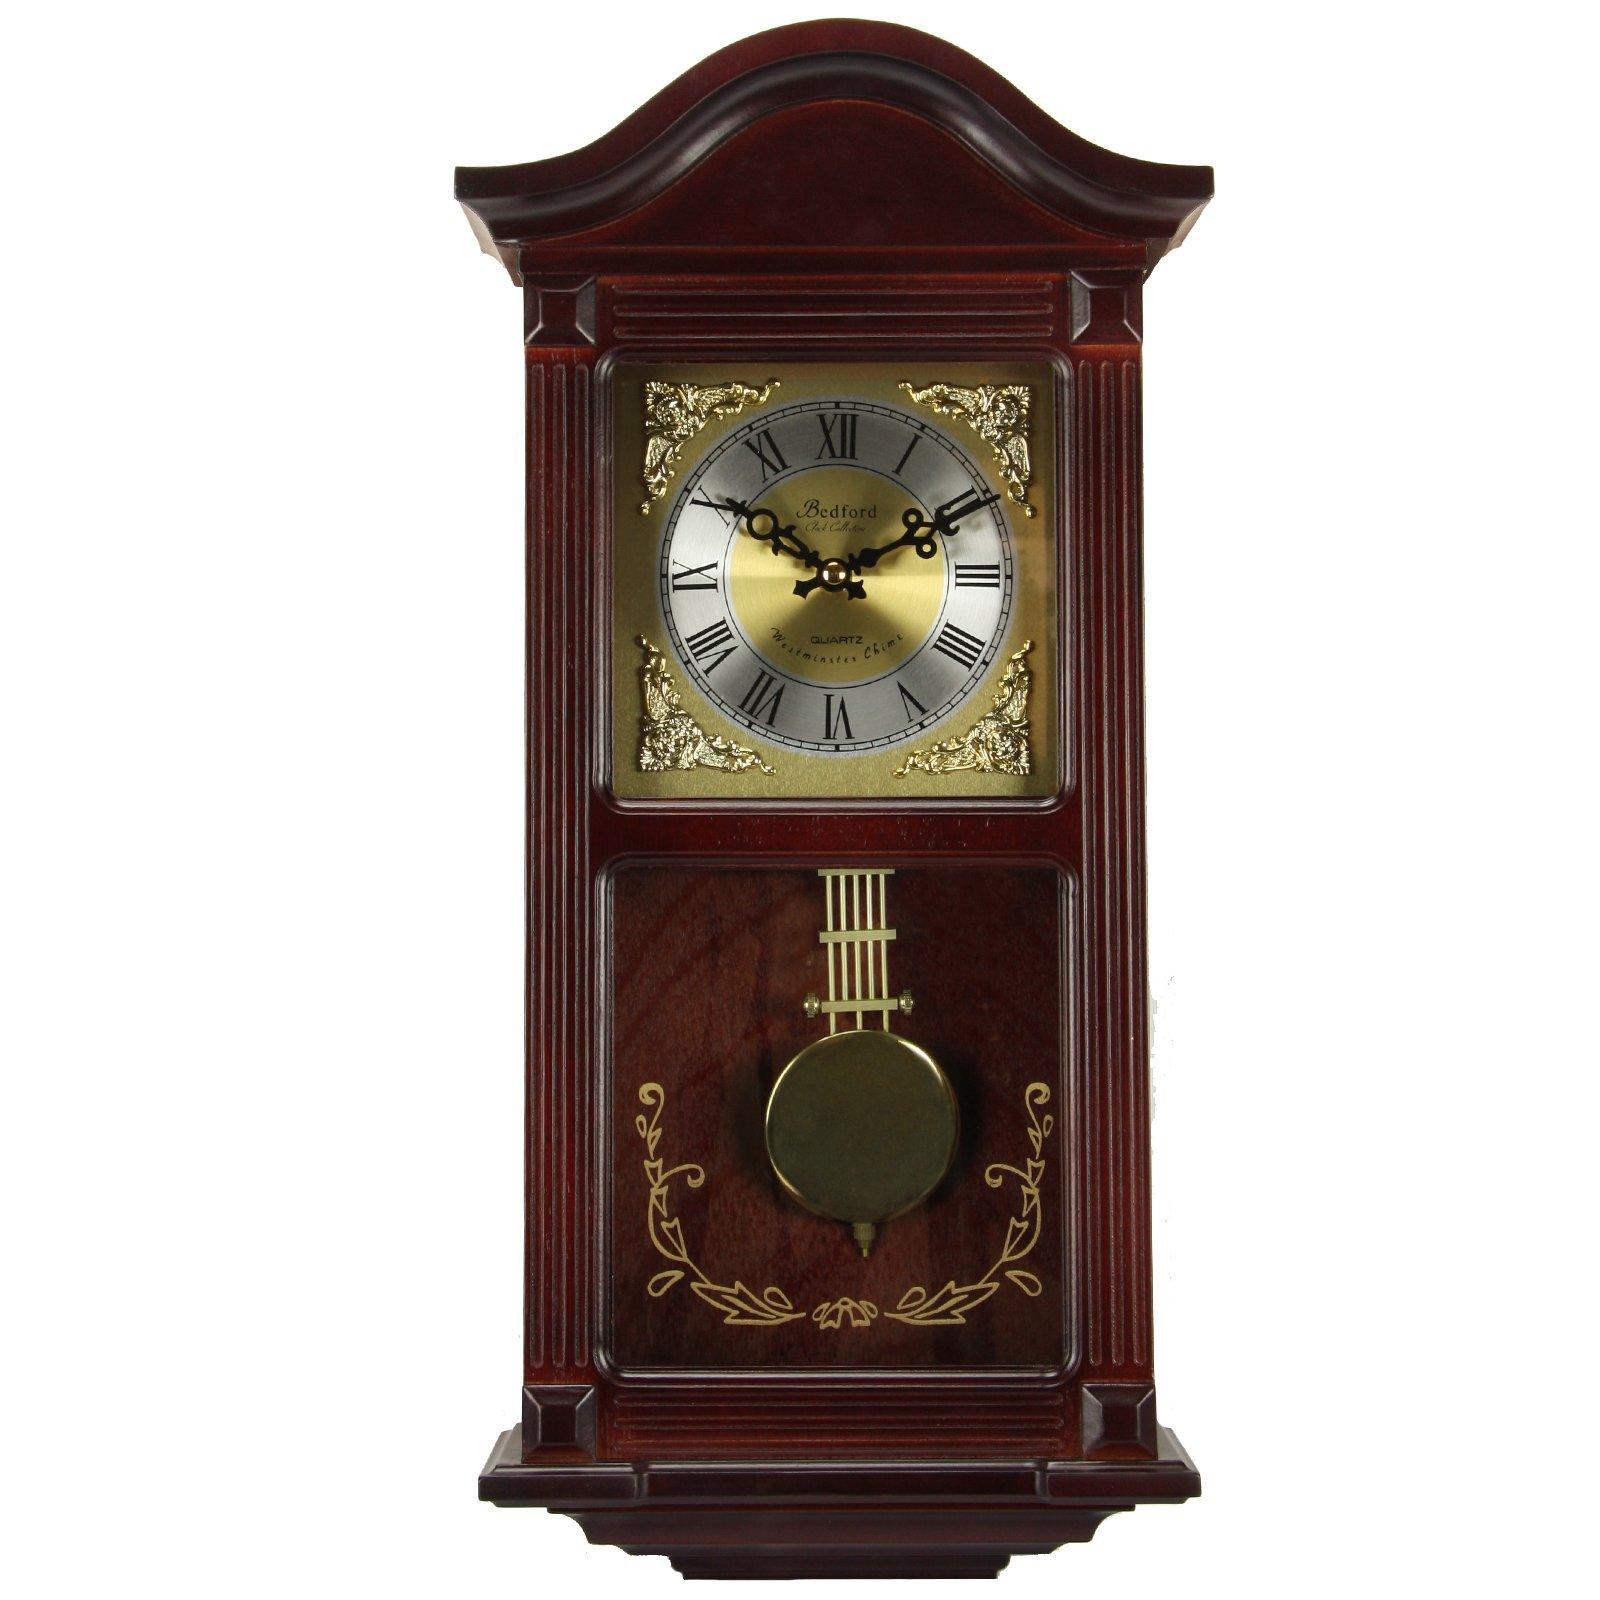 Bedford Clock Collection Mahogany Wall Clock with Pendulum and Chimes, Cherry Wood by Bedford Clock Collection